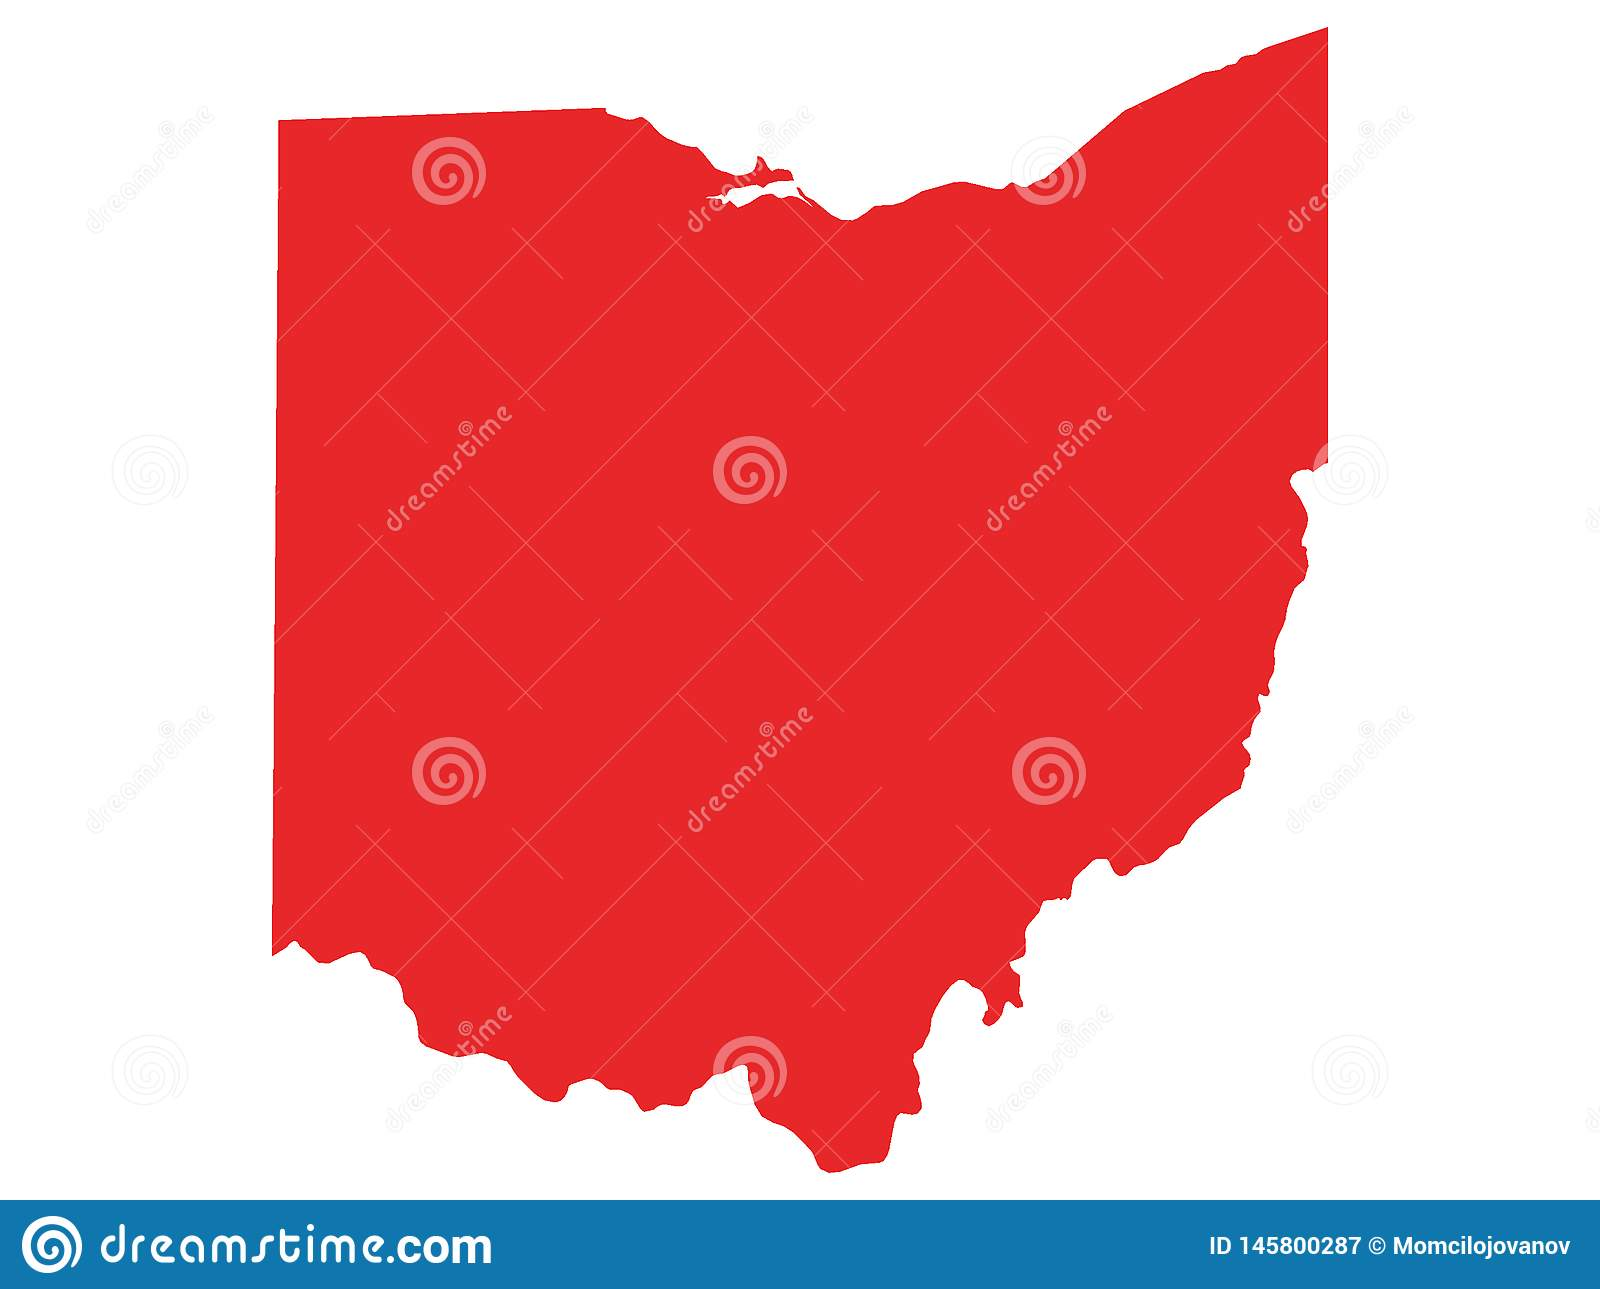 Red Map Of Us State Of Ohio Stock Vector Illustration Of Colorado - Ohio-on-us-map